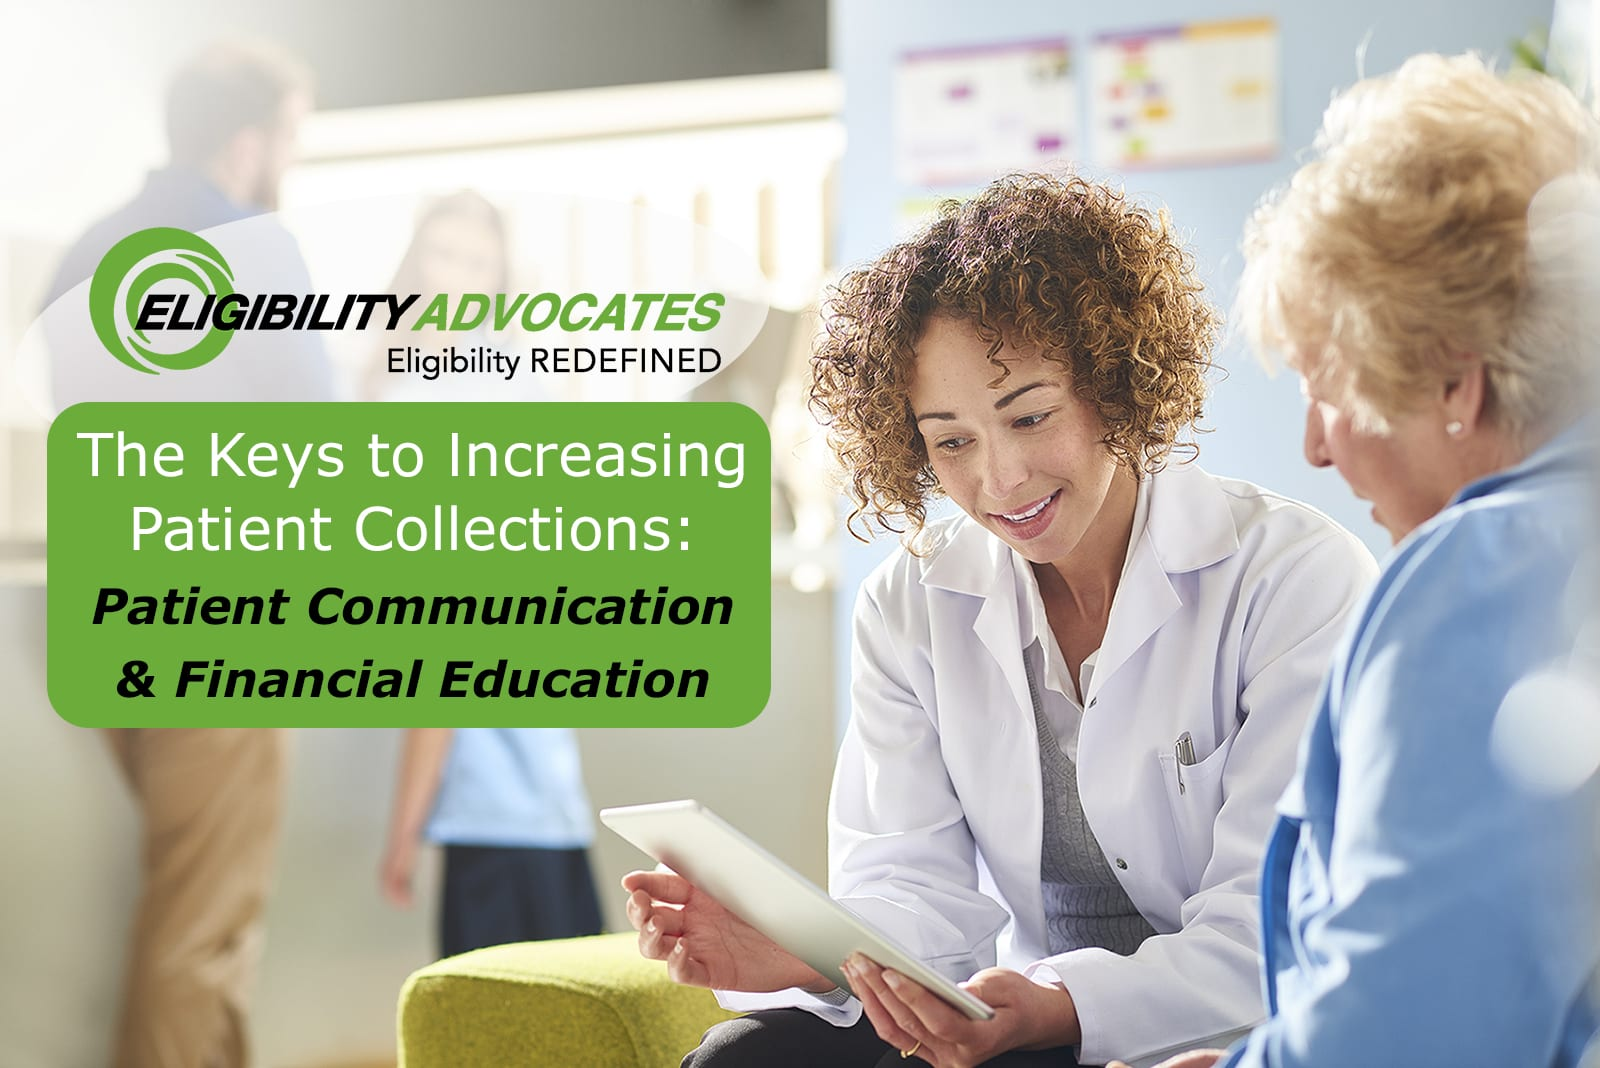 A Patient Advocate assists a patient, and the blog title appears – The Keys to Increasing Patient Collections: Patient Communication & Financial Education